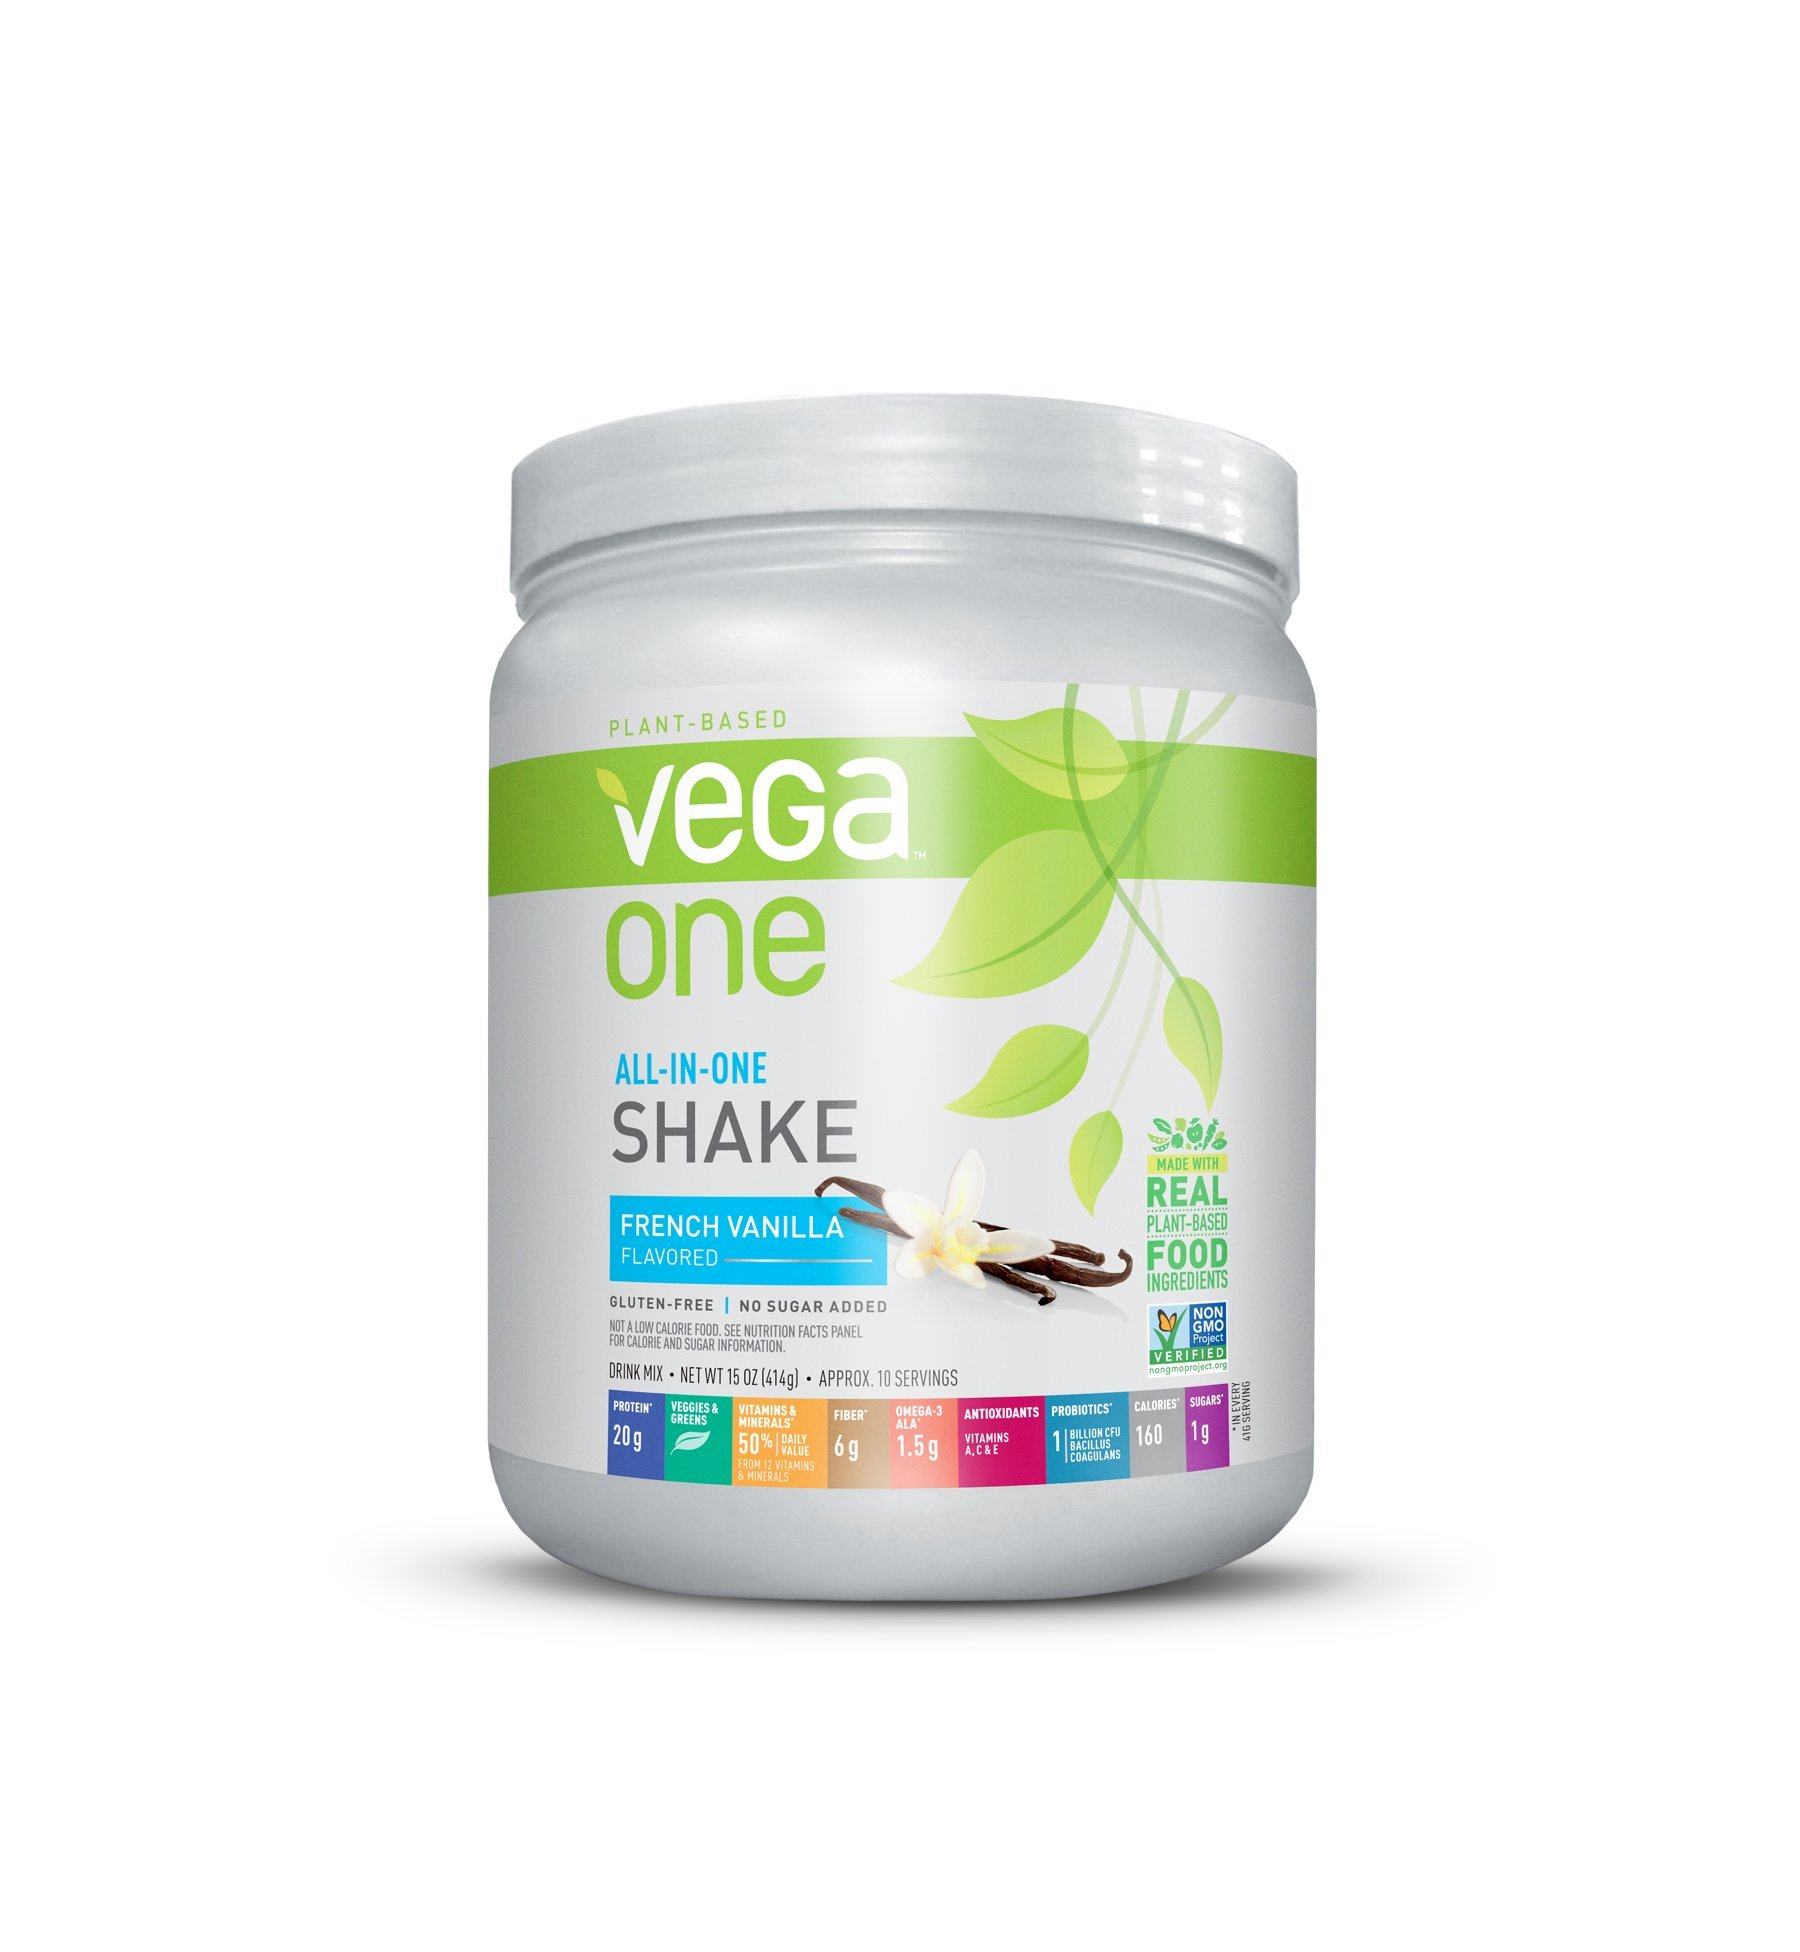 Vega One All-In-One Plant Based Protein Powder, French Vanilla, 0.94 lb, 10 Servings